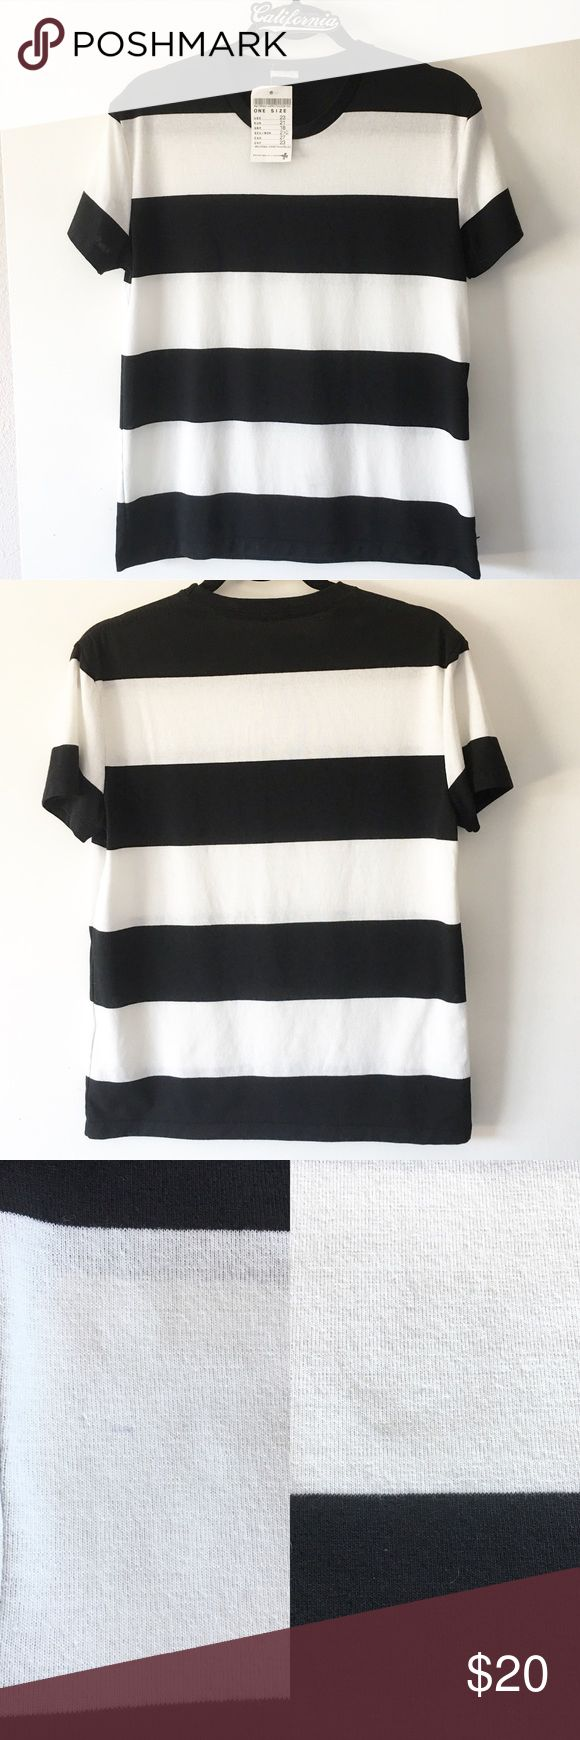 """BNWT black and white striped top 25"""" in length. Light dust stains on front but washable. Blue fuzzies blended in the fabric on front  ❌ Lowball offer will get yourself blocked 👋🏻 Brandy Melville Tops Tees - Short Sleeve"""